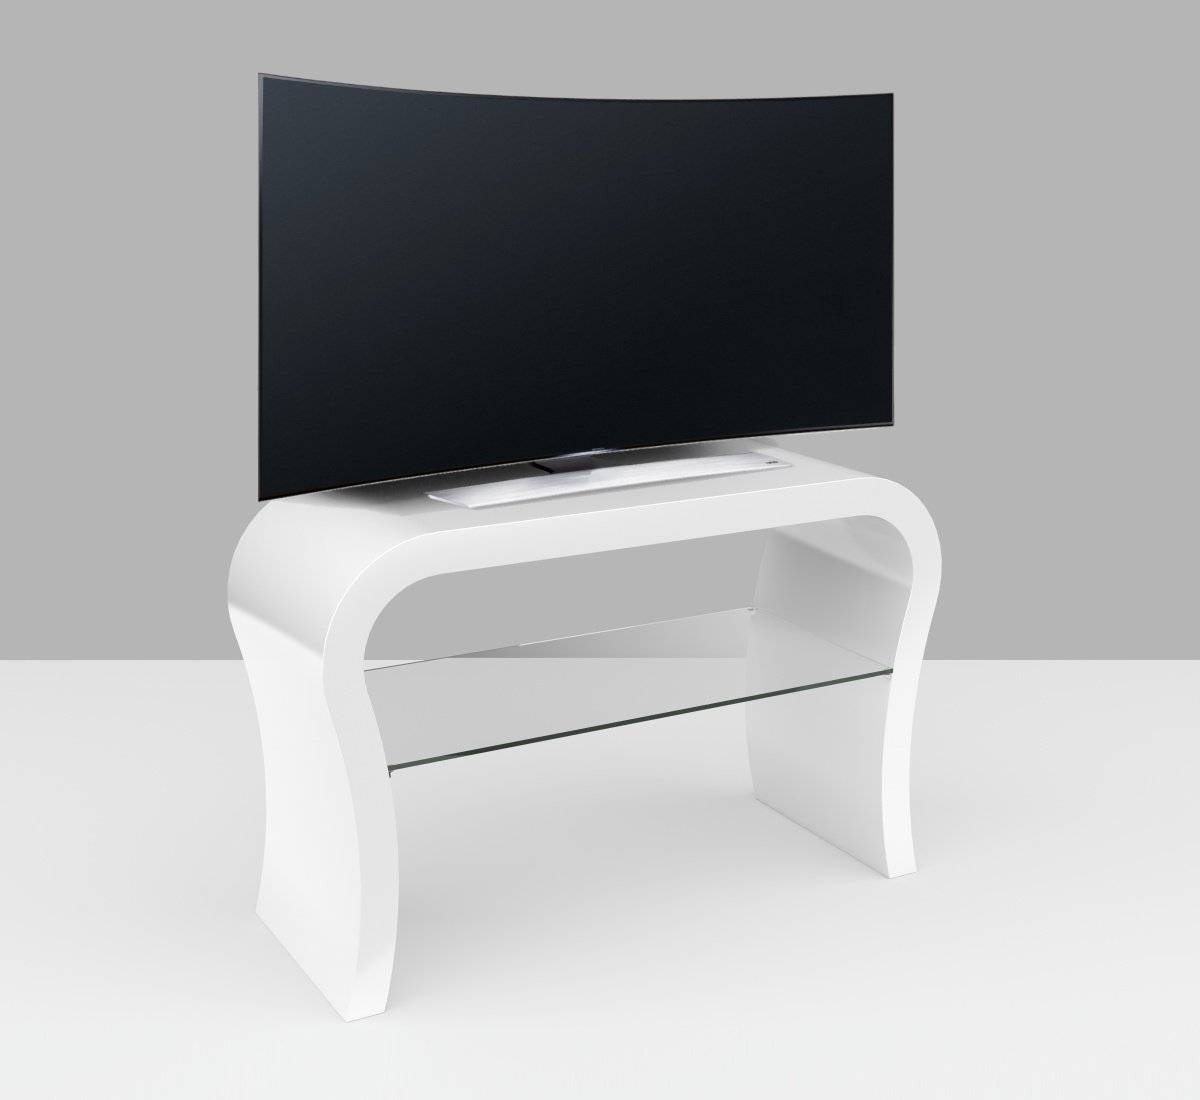 White Gloss Tv Stand Lowline Tv Unit White Gloss Modern Tv Cabinet inside Gloss White Tv Stands (Image 13 of 15)